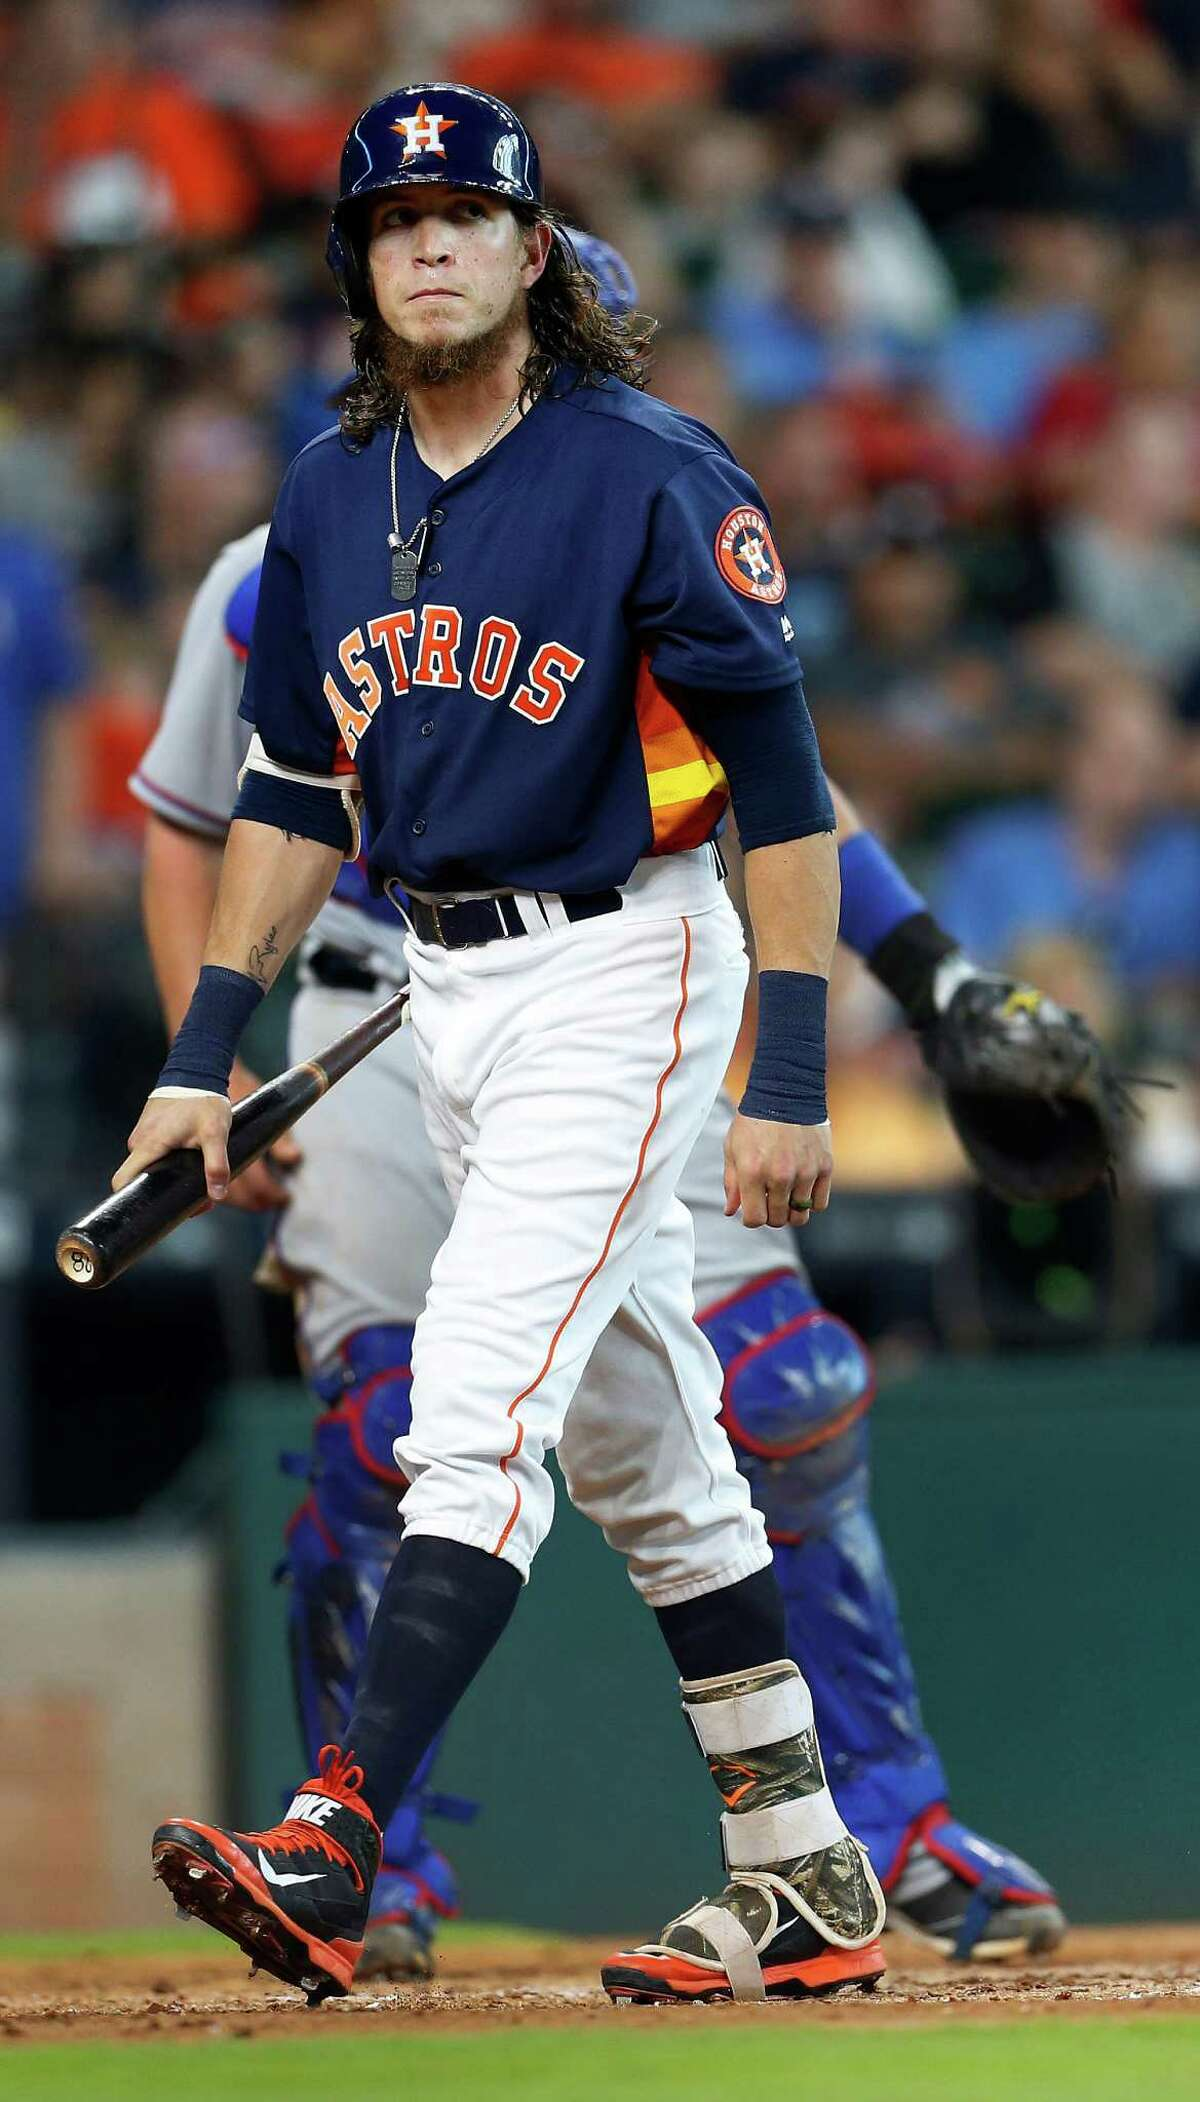 Houston Astros left fielder Colby Rasmus (28) reacts after striking out during the fourth inning of an MLB baseball game at Minute Maid Park, Sunday, May 22, 2016.